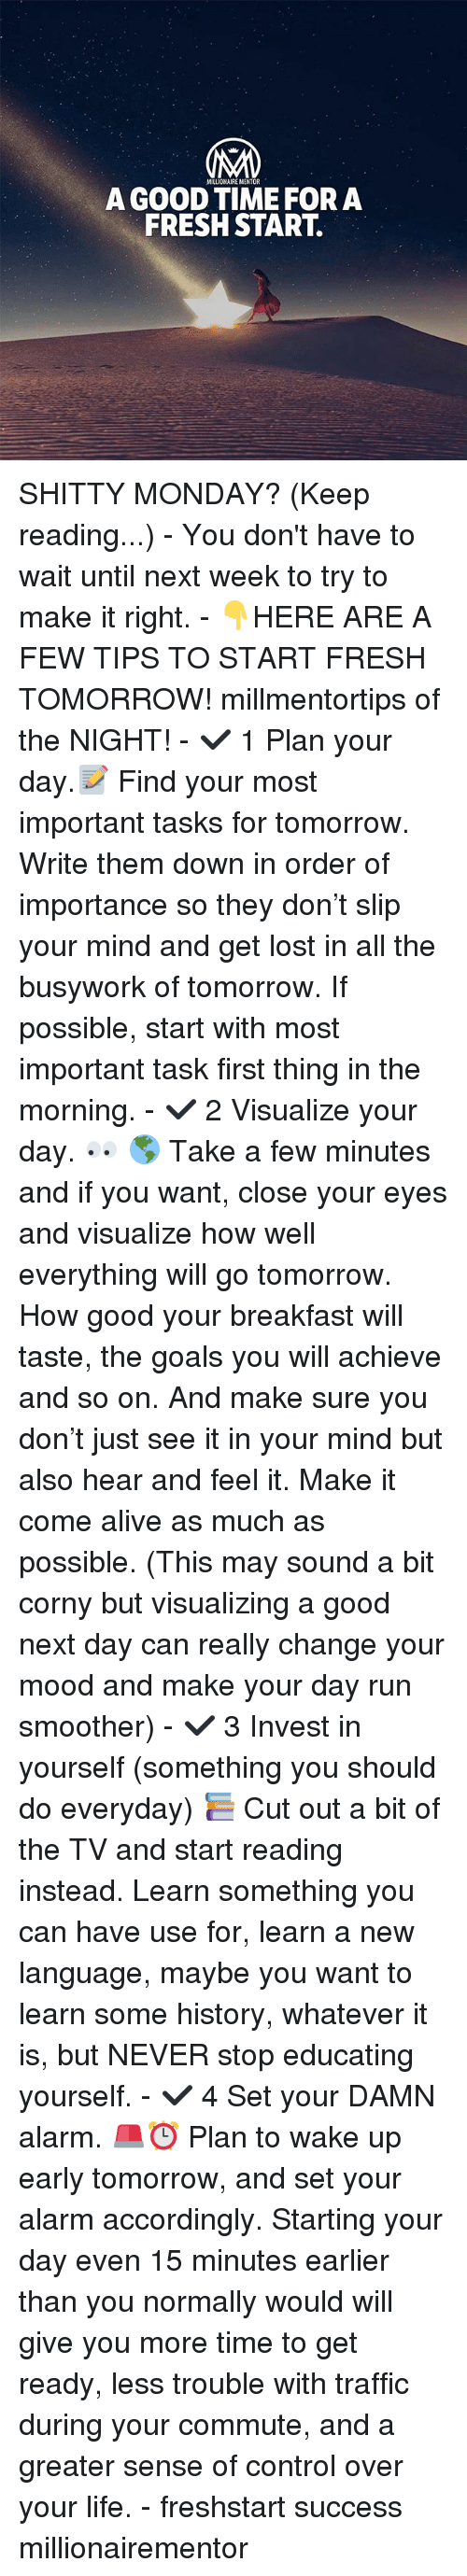 Alive, Fresh, and Goals: MILLIONAIRE MENTOR  A GOOD TIME FORA  FRESH START. SHITTY MONDAY? (Keep reading...) - You don't have to wait until next week to try to make it right. - 👇HERE ARE A FEW TIPS TO START FRESH TOMORROW! millmentortips of the NIGHT! - ✔️ 1 Plan your day.📝 Find your most important tasks for tomorrow. Write them down in order of importance so they don't slip your mind and get lost in all the busywork of tomorrow. If possible, start with most important task first thing in the morning. - ✔️ 2 Visualize your day. 👀 🌎 Take a few minutes and if you want, close your eyes and visualize how well everything will go tomorrow. How good your breakfast will taste, the goals you will achieve and so on. And make sure you don't just see it in your mind but also hear and feel it. Make it come alive as much as possible. (This may sound a bit corny but visualizing a good next day can really change your mood and make your day run smoother) - ✔️ 3 Invest in yourself (something you should do everyday) 📚 Cut out a bit of the TV and start reading instead. Learn something you can have use for, learn a new language, maybe you want to learn some history, whatever it is, but NEVER stop educating yourself. - ✔️ 4 Set your DAMN alarm. 🚨⏰ Plan to wake up early tomorrow, and set your alarm accordingly. Starting your day even 15 minutes earlier than you normally would will give you more time to get ready, less trouble with traffic during your commute, and a greater sense of control over your life. - freshstart success millionairementor